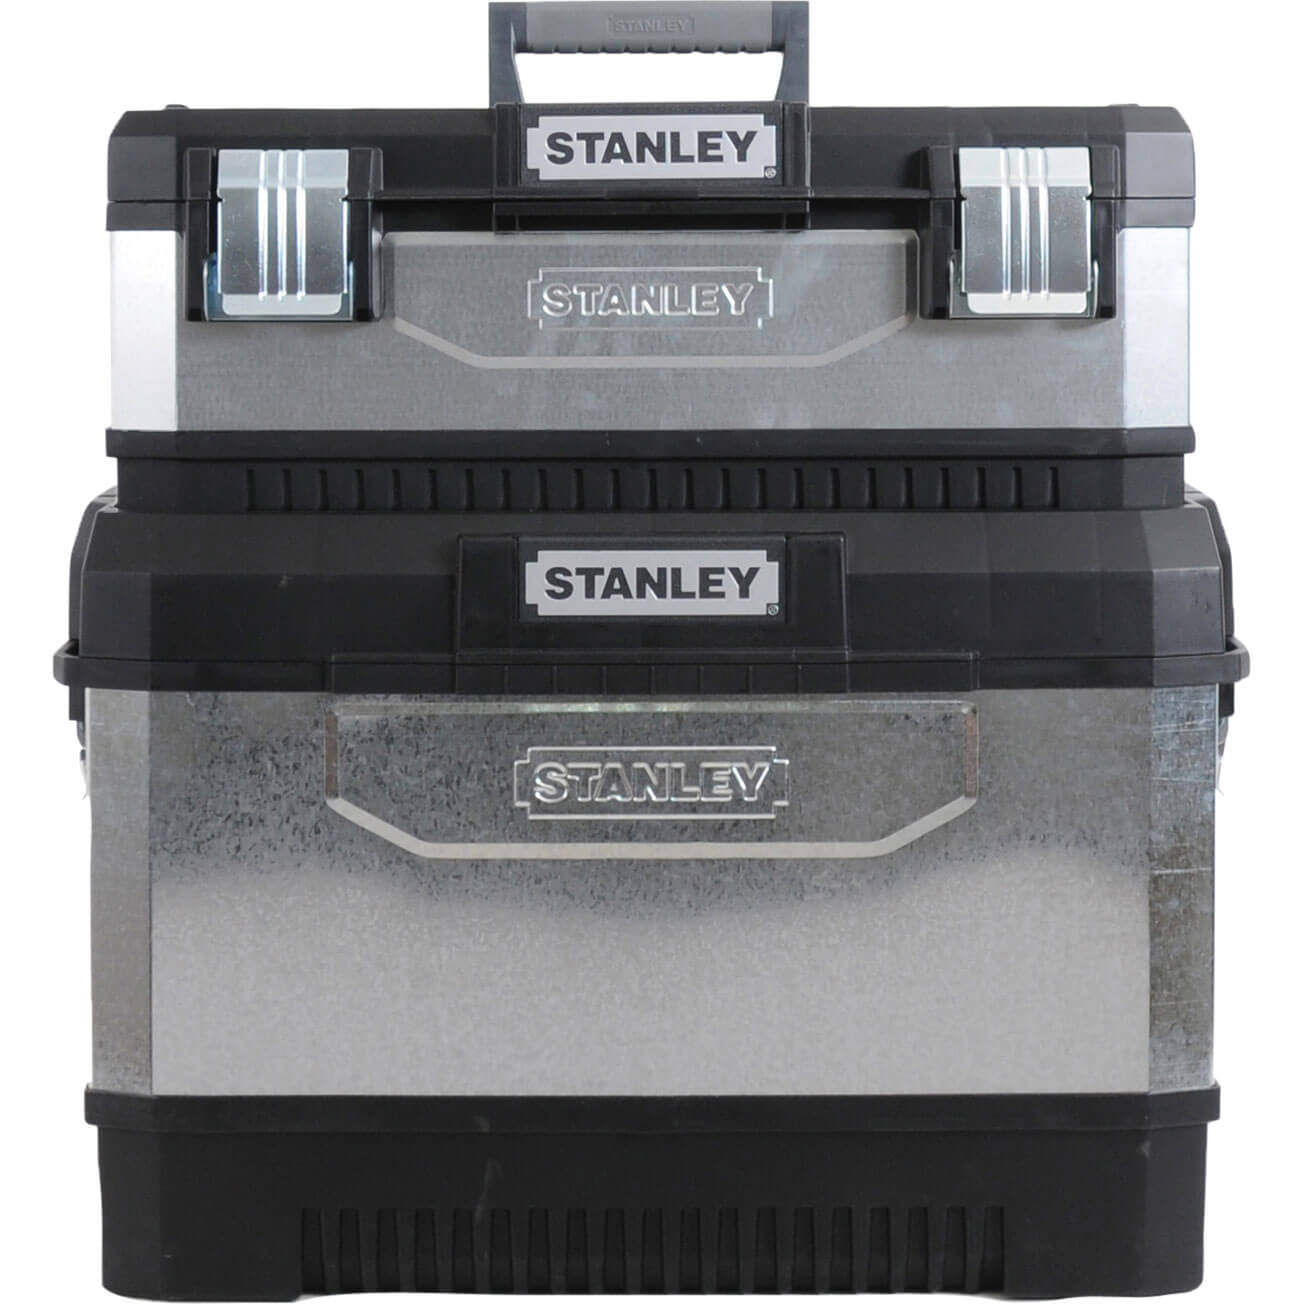 Stanley Galvanised Metal Rolling Work Centre Tool Box with Wheels Grey & Black 575mm / 23